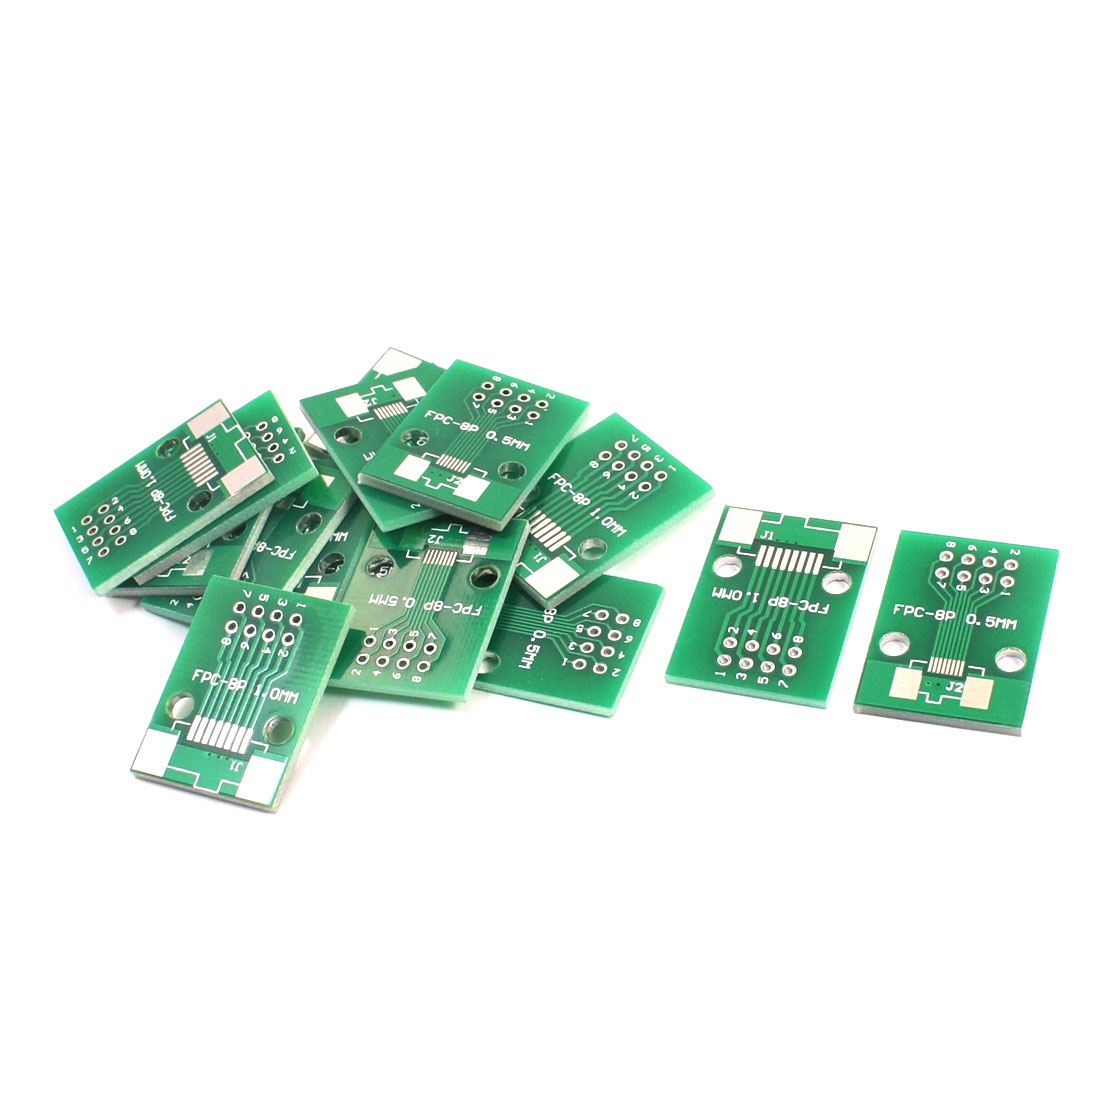 26mm x 19mm FPC-8P SOP8 1mm 0.5mm to DIP8 2.54mm Pitch Interposer PCB Board Adapter Plate Converter